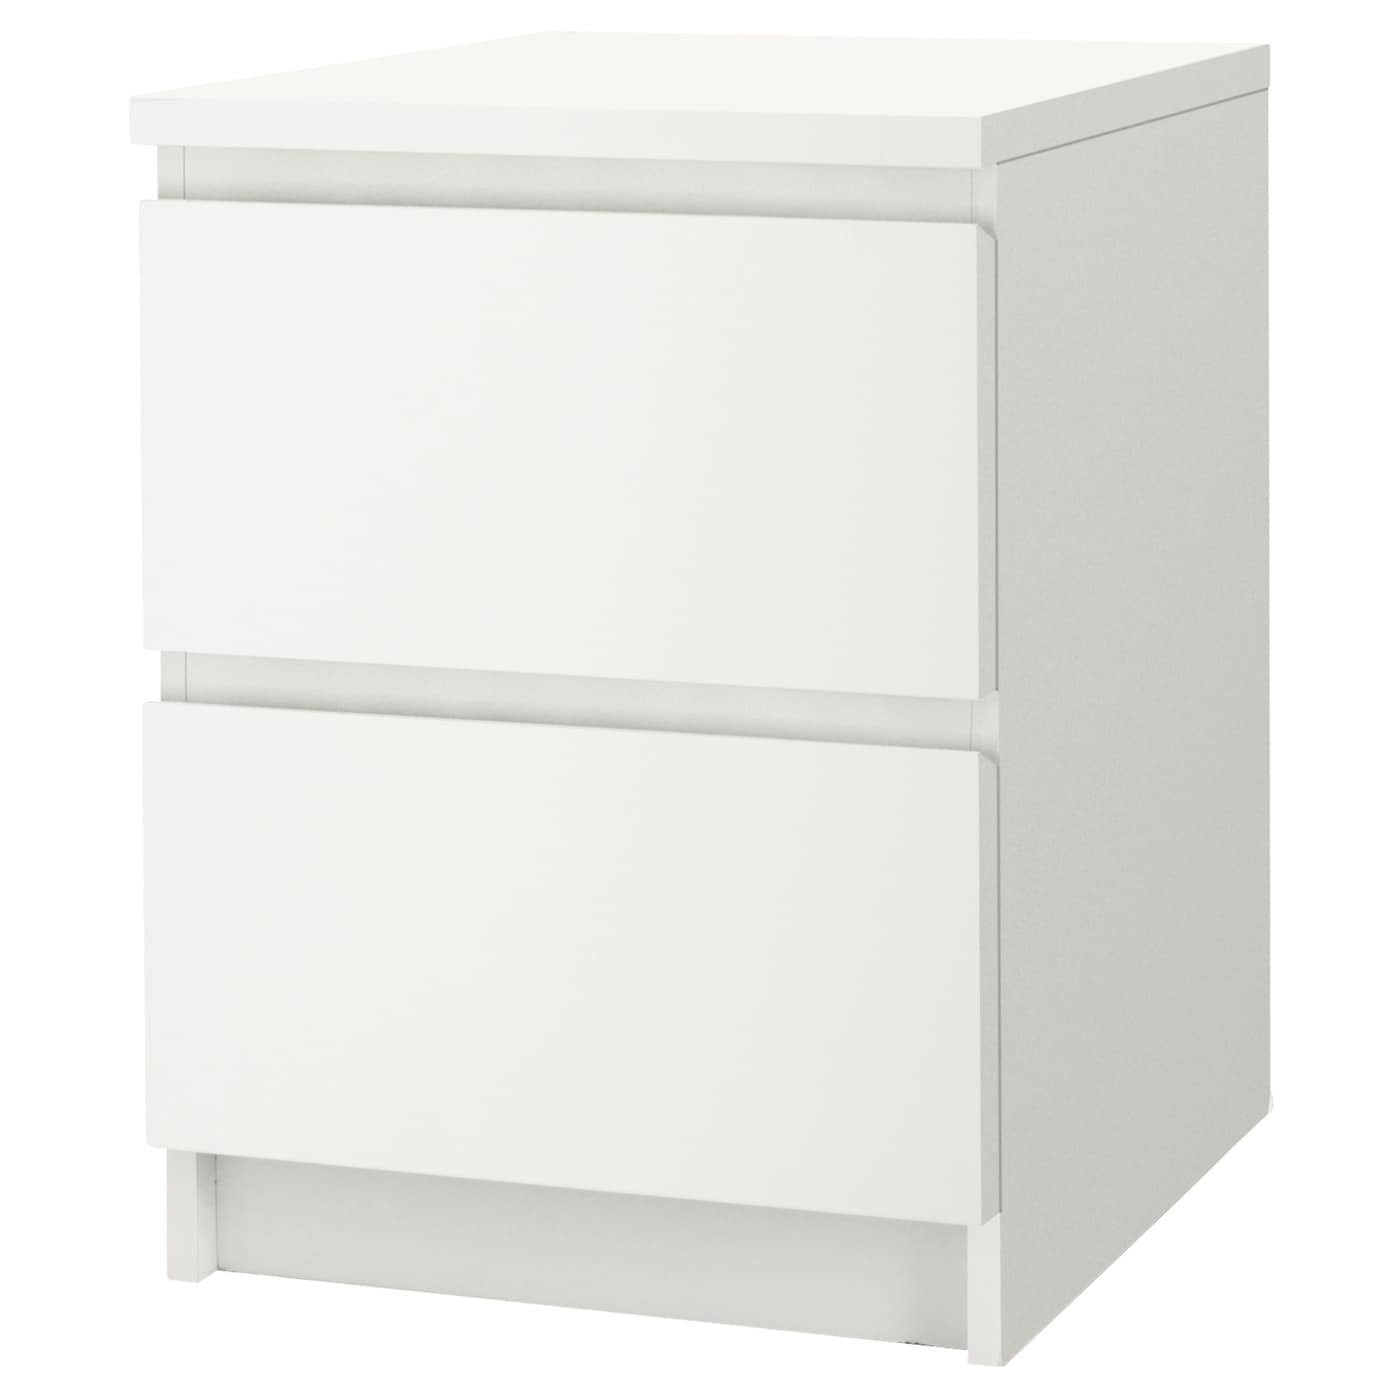 mint dombas storage wardrobes wardrobe price shelving bargain ikea p condition in croydon